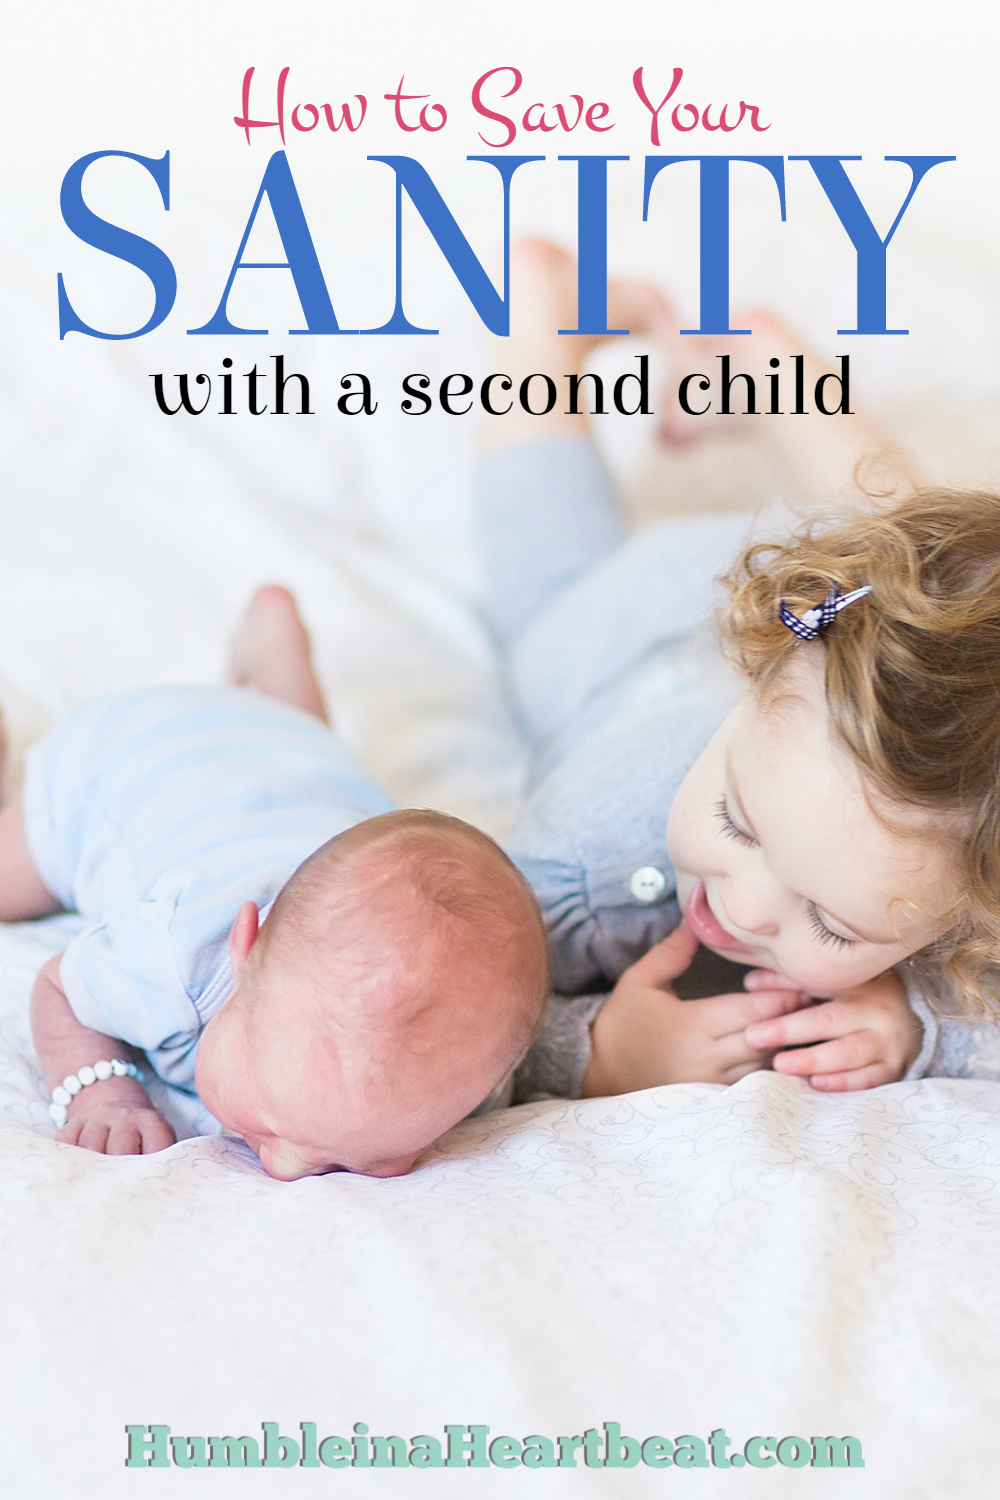 Before you bring baby #2 home from the hospital, it would be wise to do this one thing that will save your sanity as a mom. Put it at the top of your list!